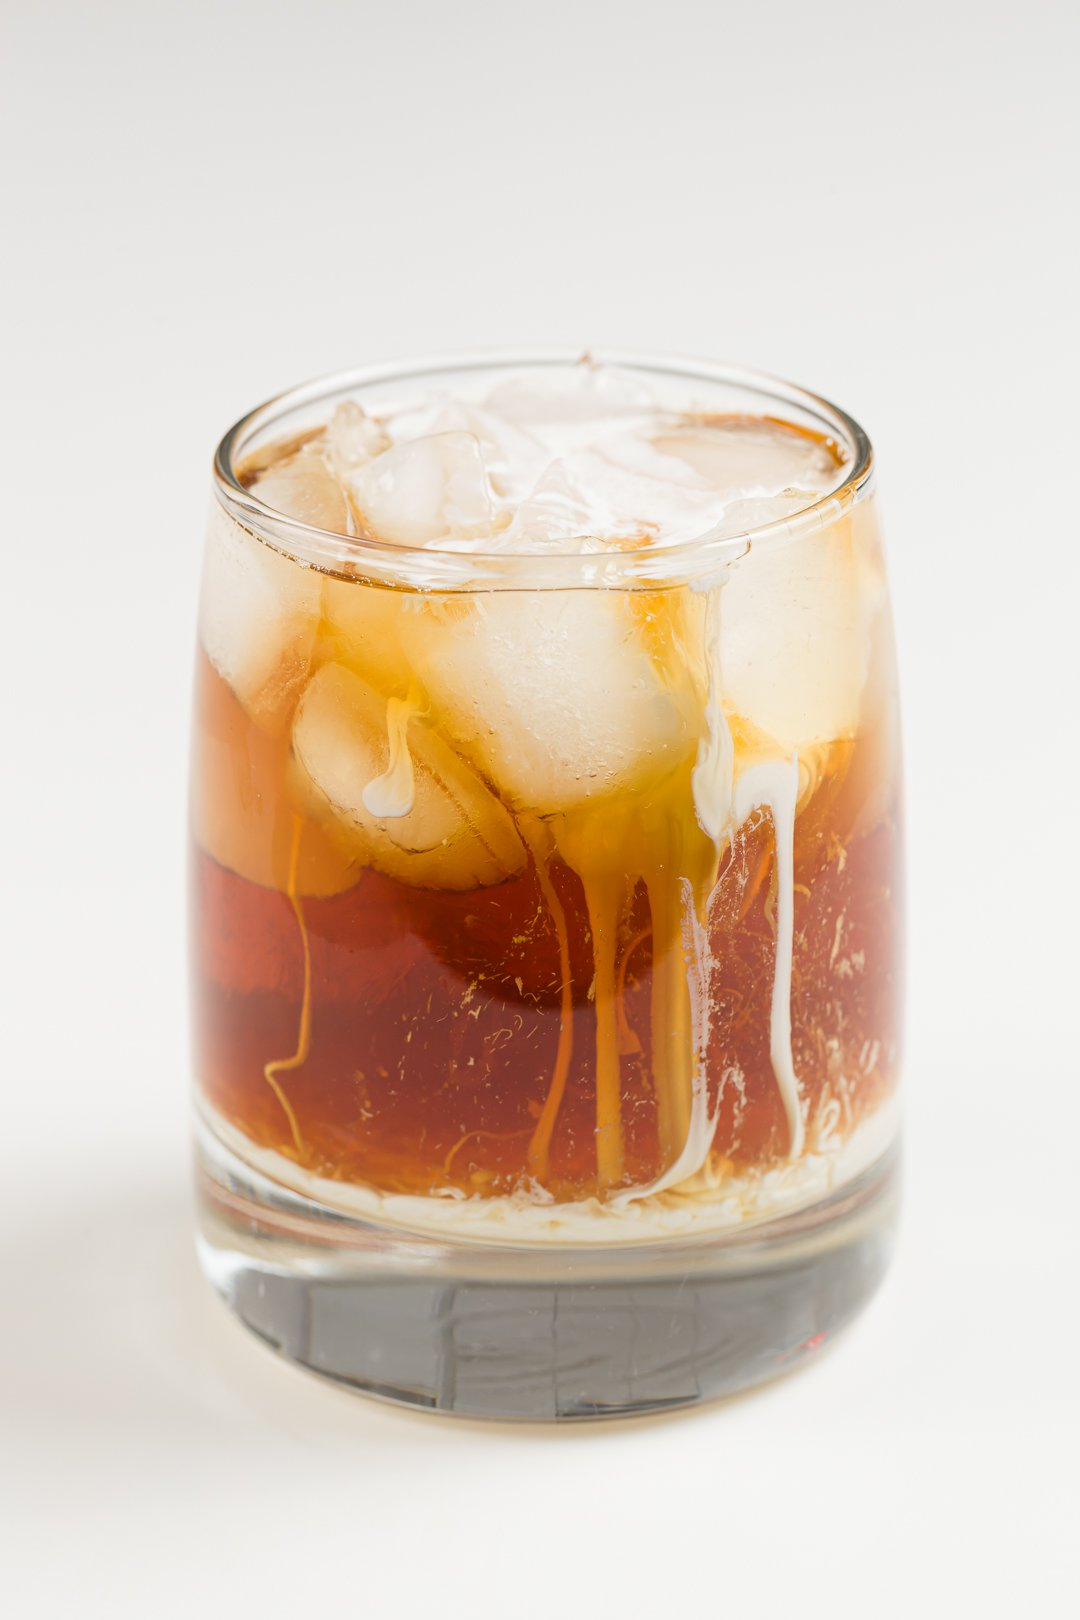 glass with a White Russian cocktail made with homemade Kahlua